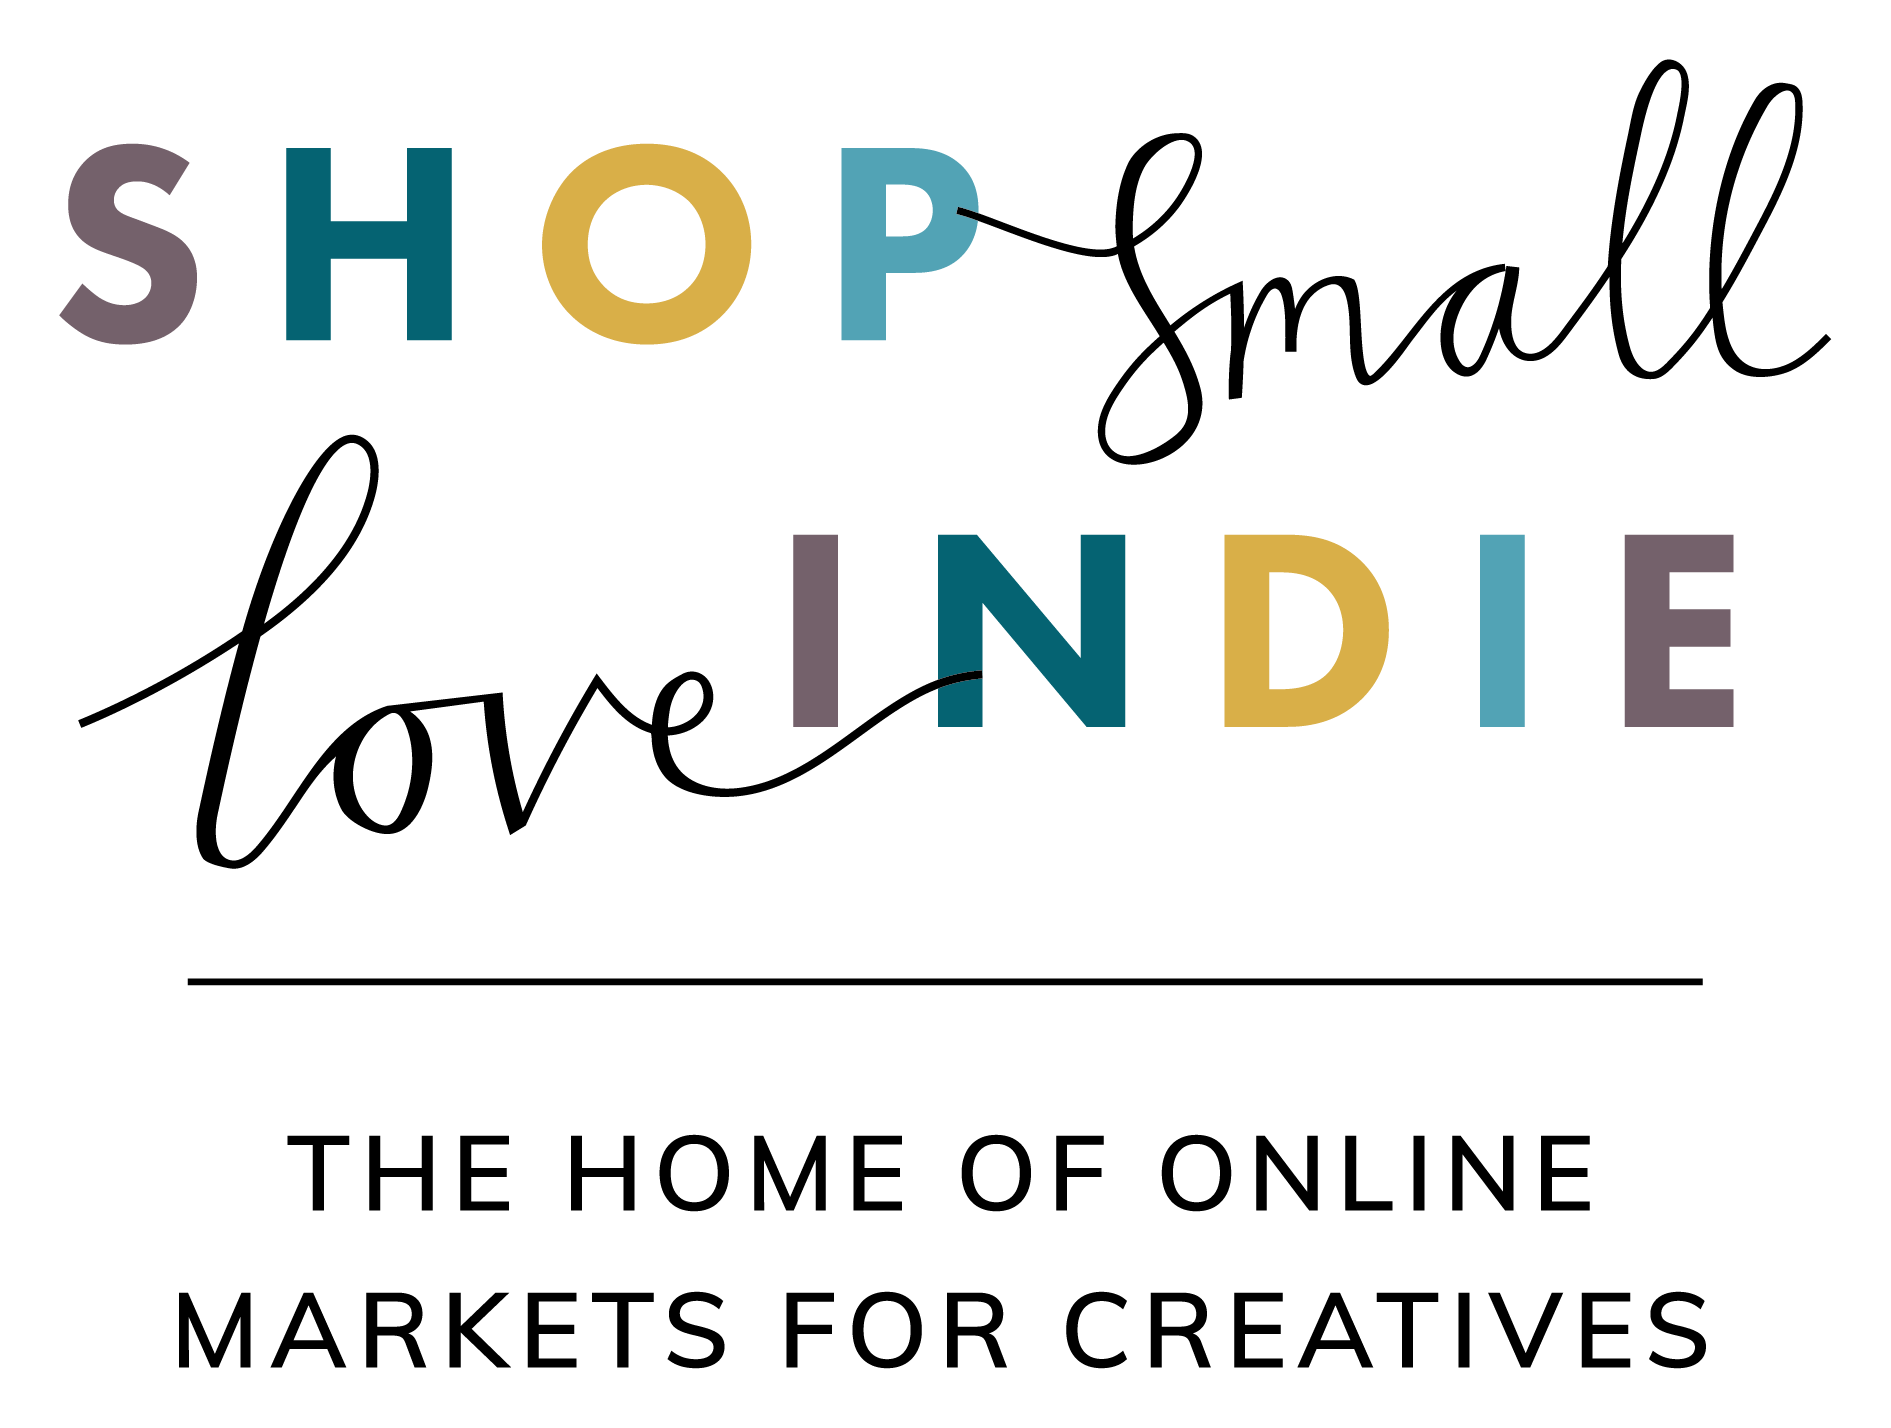 Shop Small Love Indie Limited